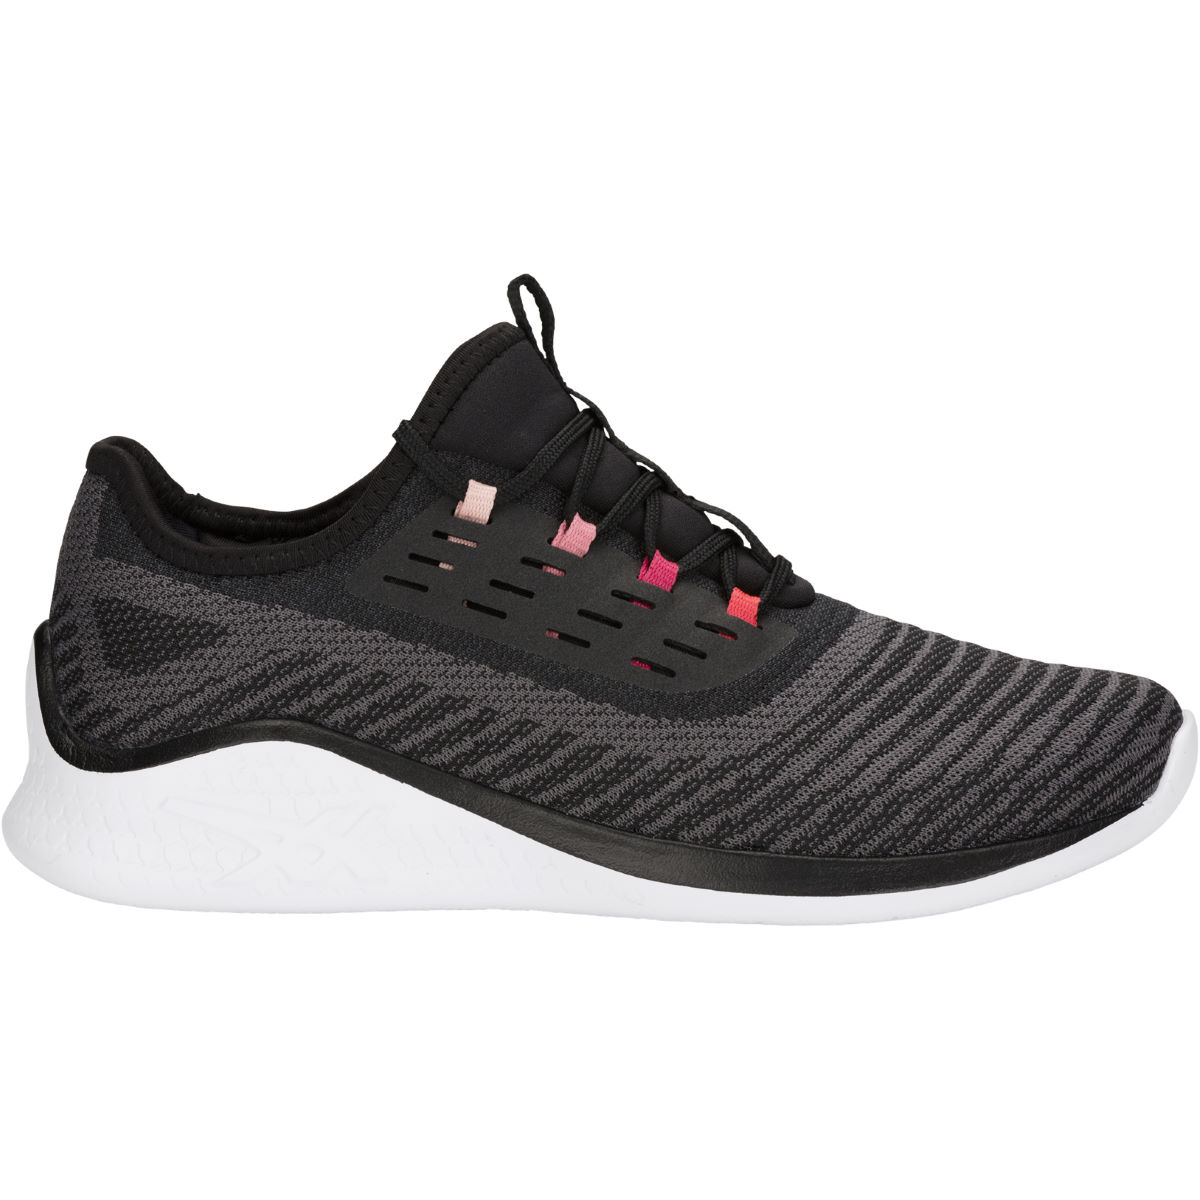 Asics Women's Fuzetora Twist Shoes - Zapatillas de fitness